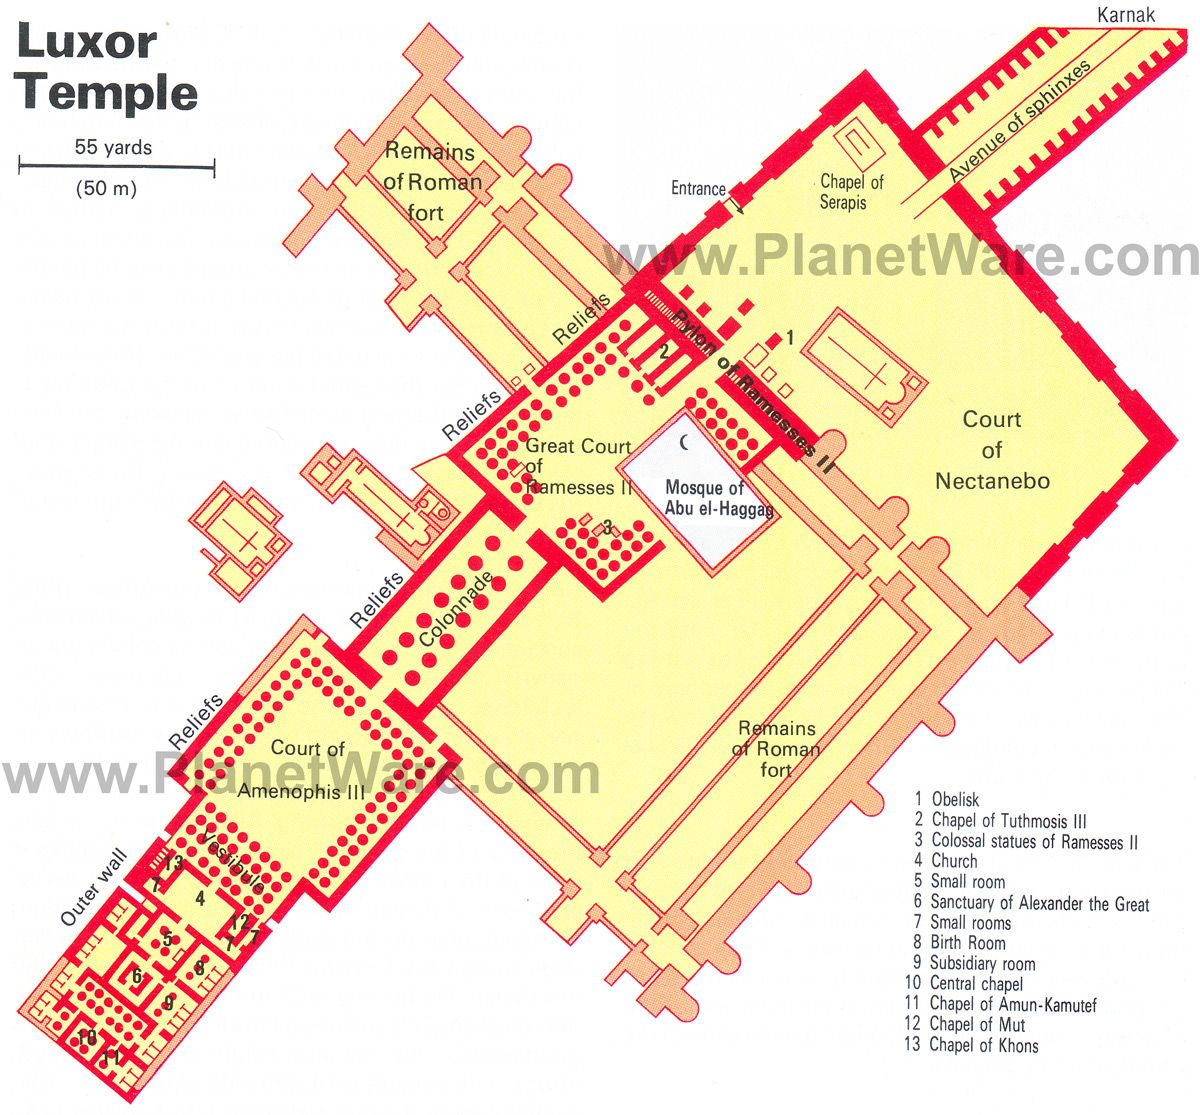 Luxor Temple Floor Plan Map Kemit Temples And Tombs - Map of egypt during the new kingdom